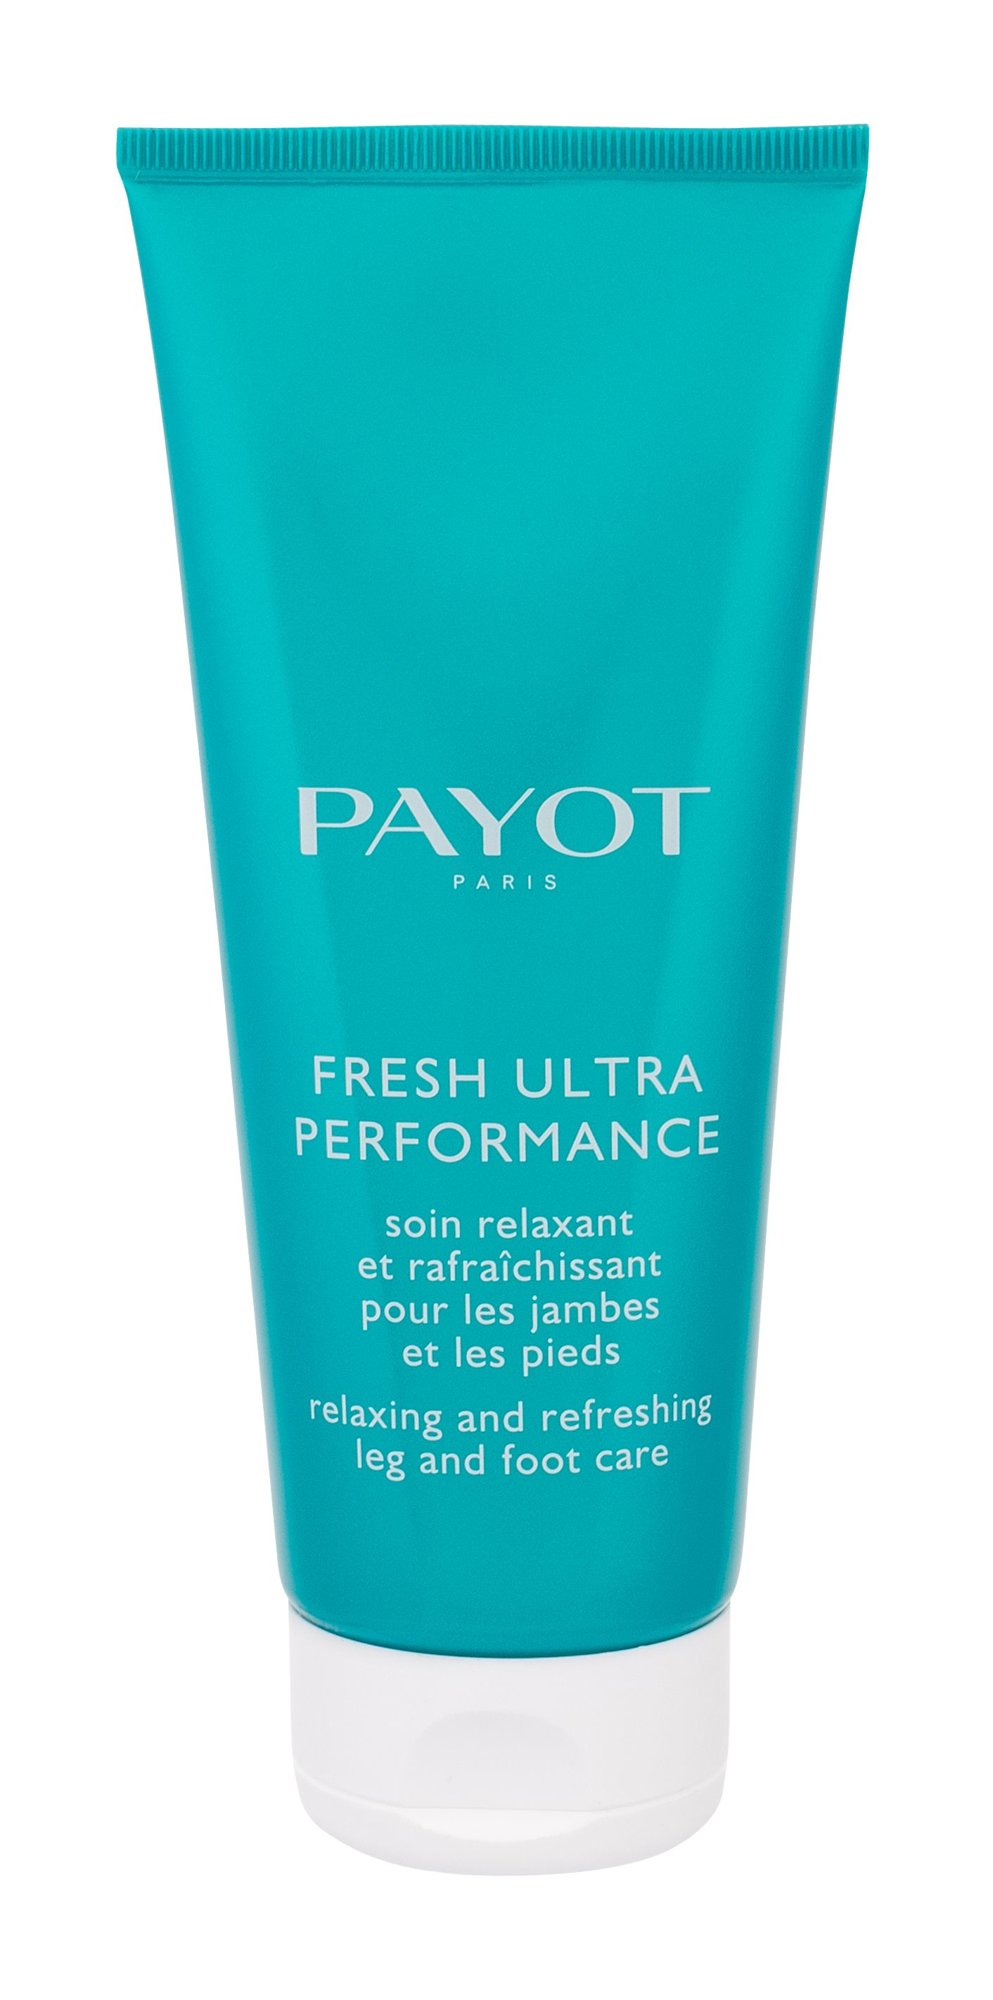 PAYOT Le Corps Cosmetic 200ml  Relaxing And Refreshing Leg And Foot Care